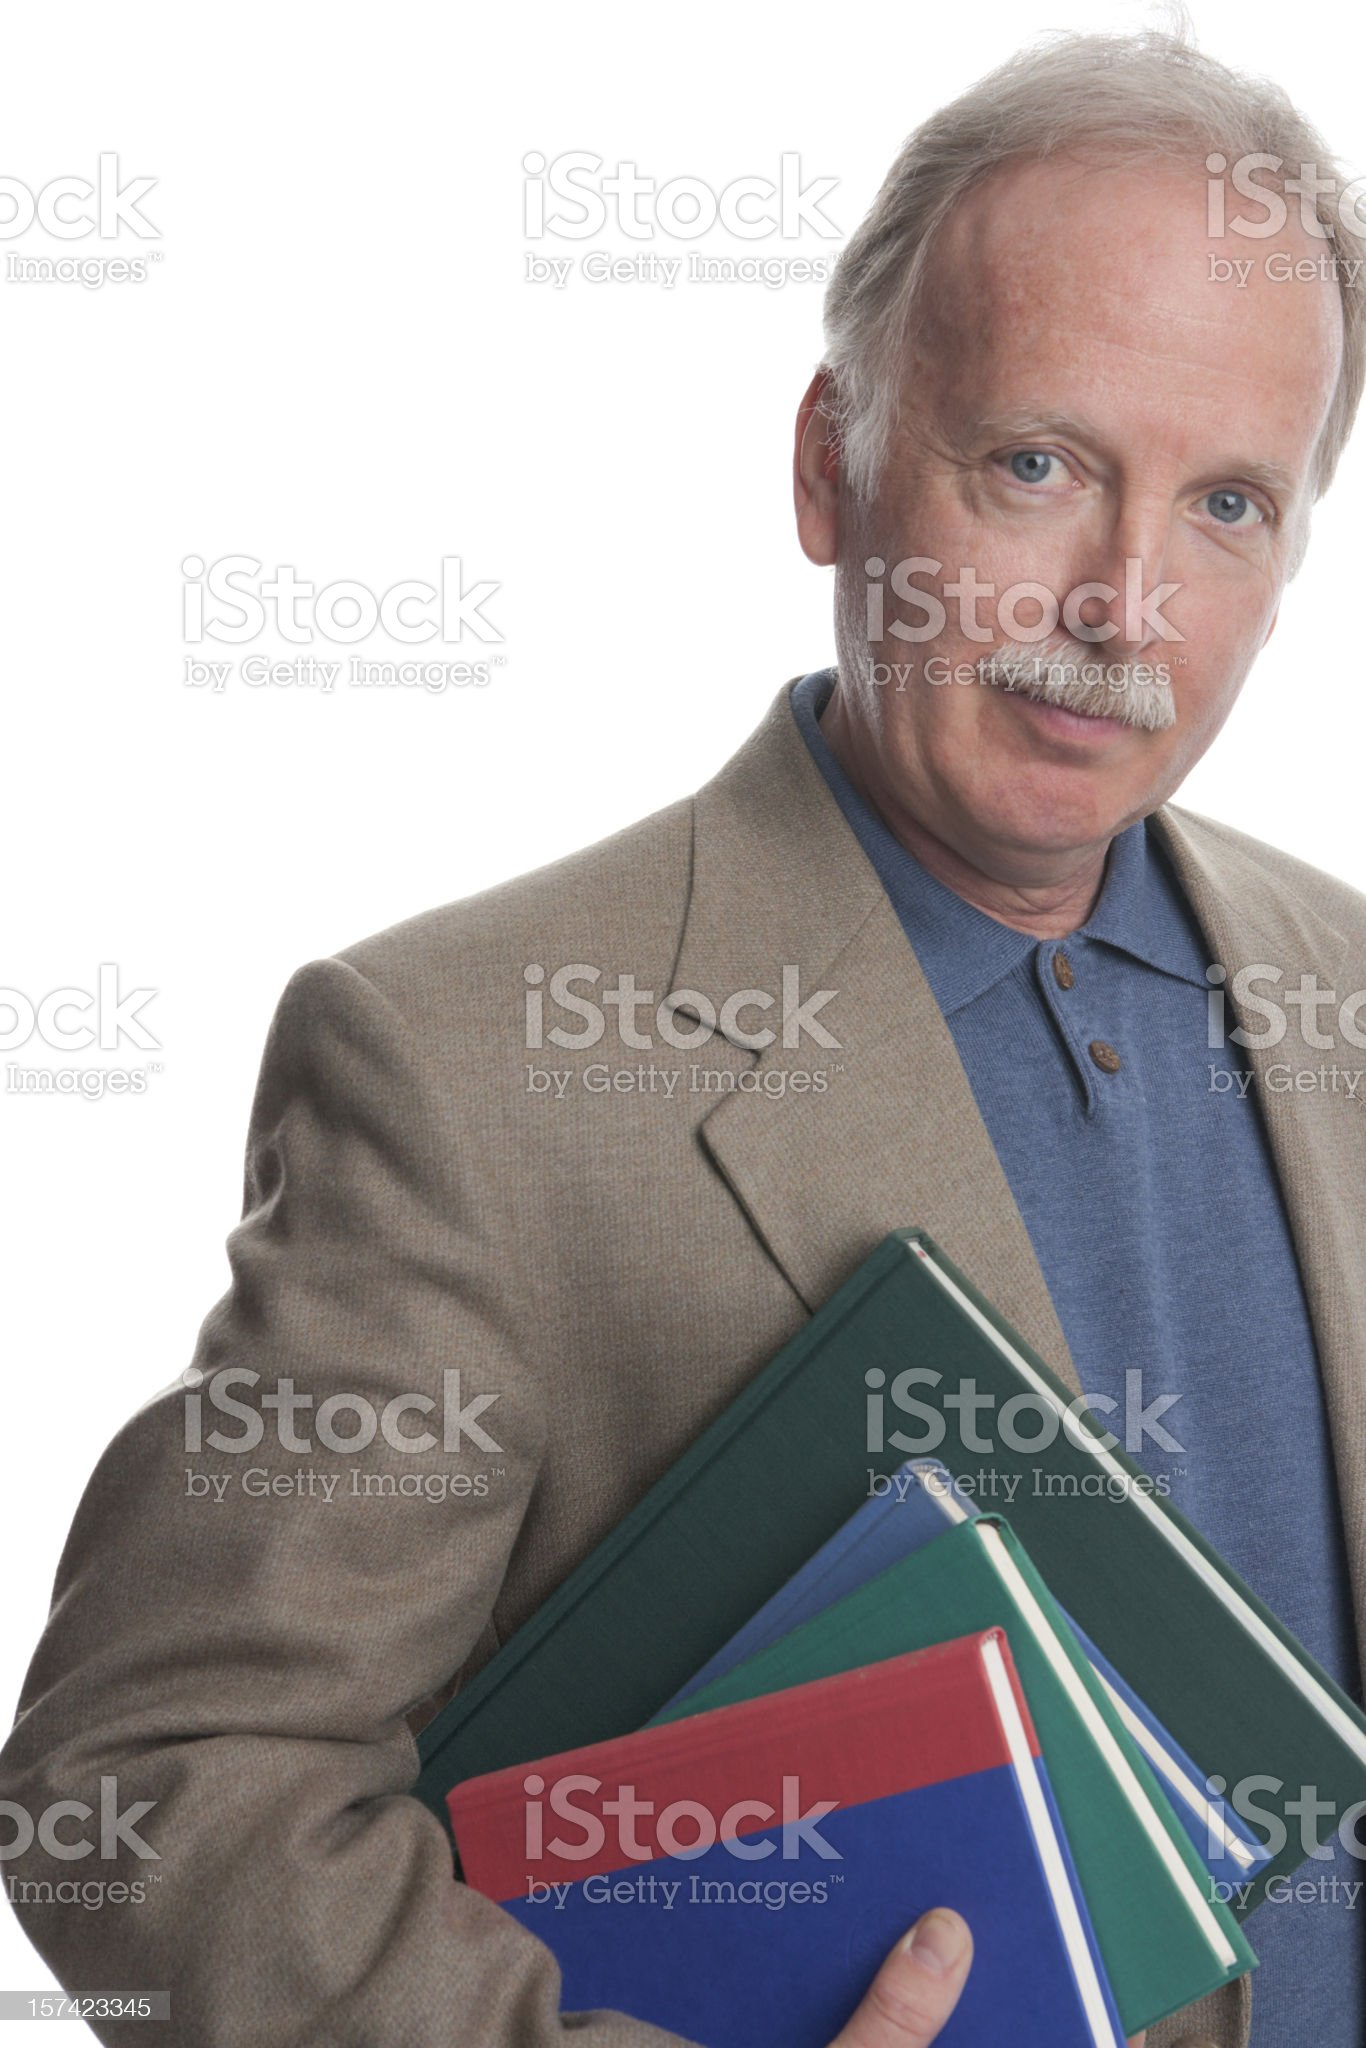 Professor or Librarian with books royalty-free stock photo